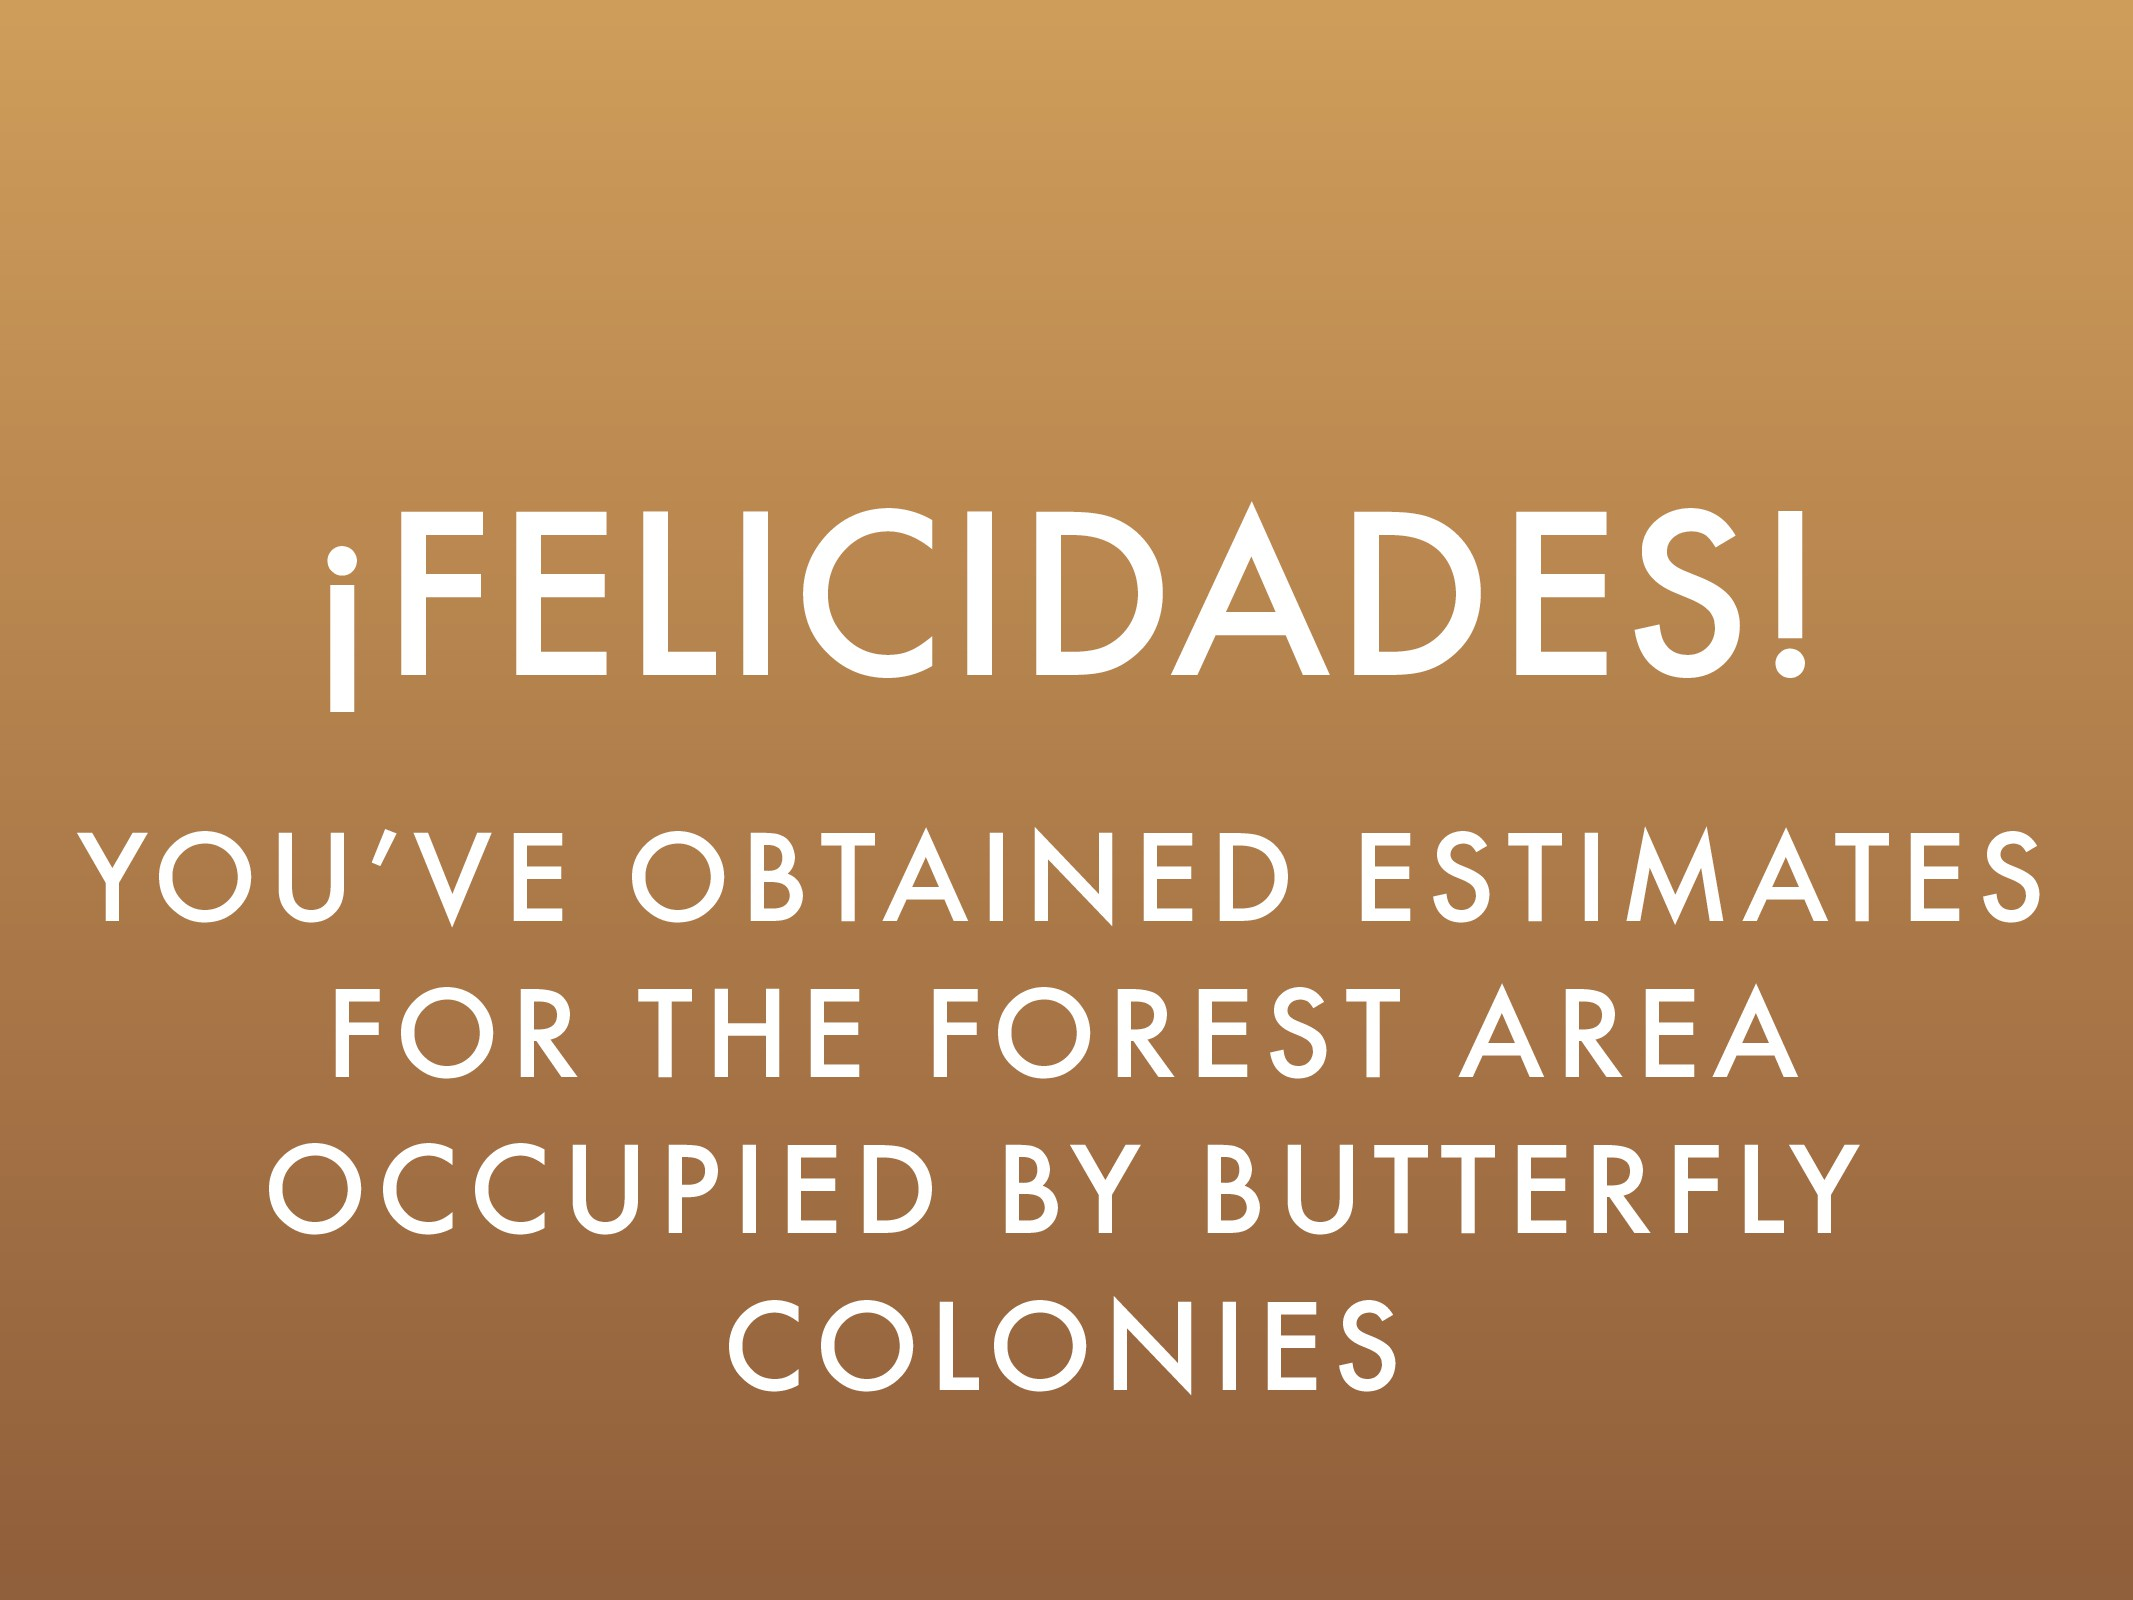 ¡FELICIDADES! YOU'VE OBTAINED ESTIMATES FOR THE...